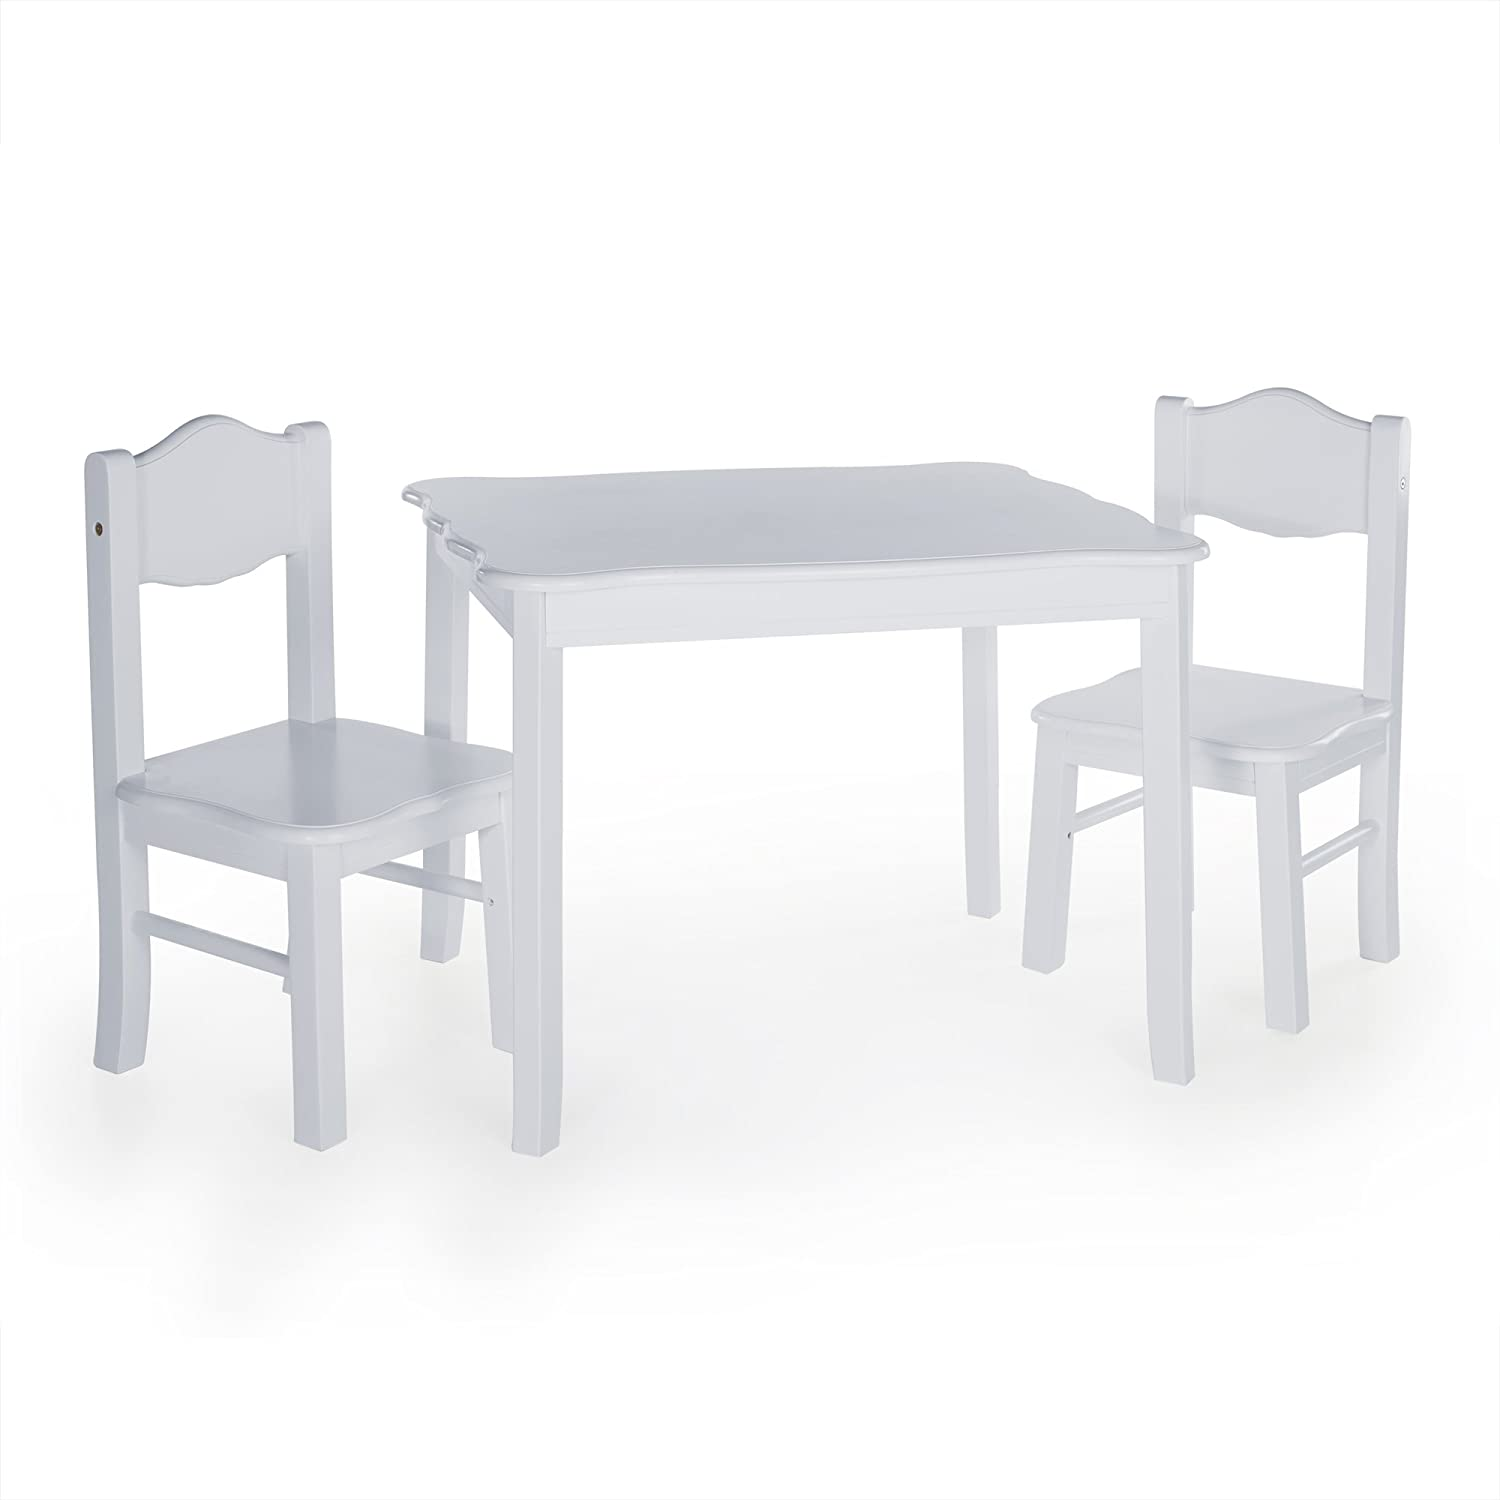 Guidecraft Classic Table and Chairs Set - Espresso: Kids Playroom Furniture 23213E